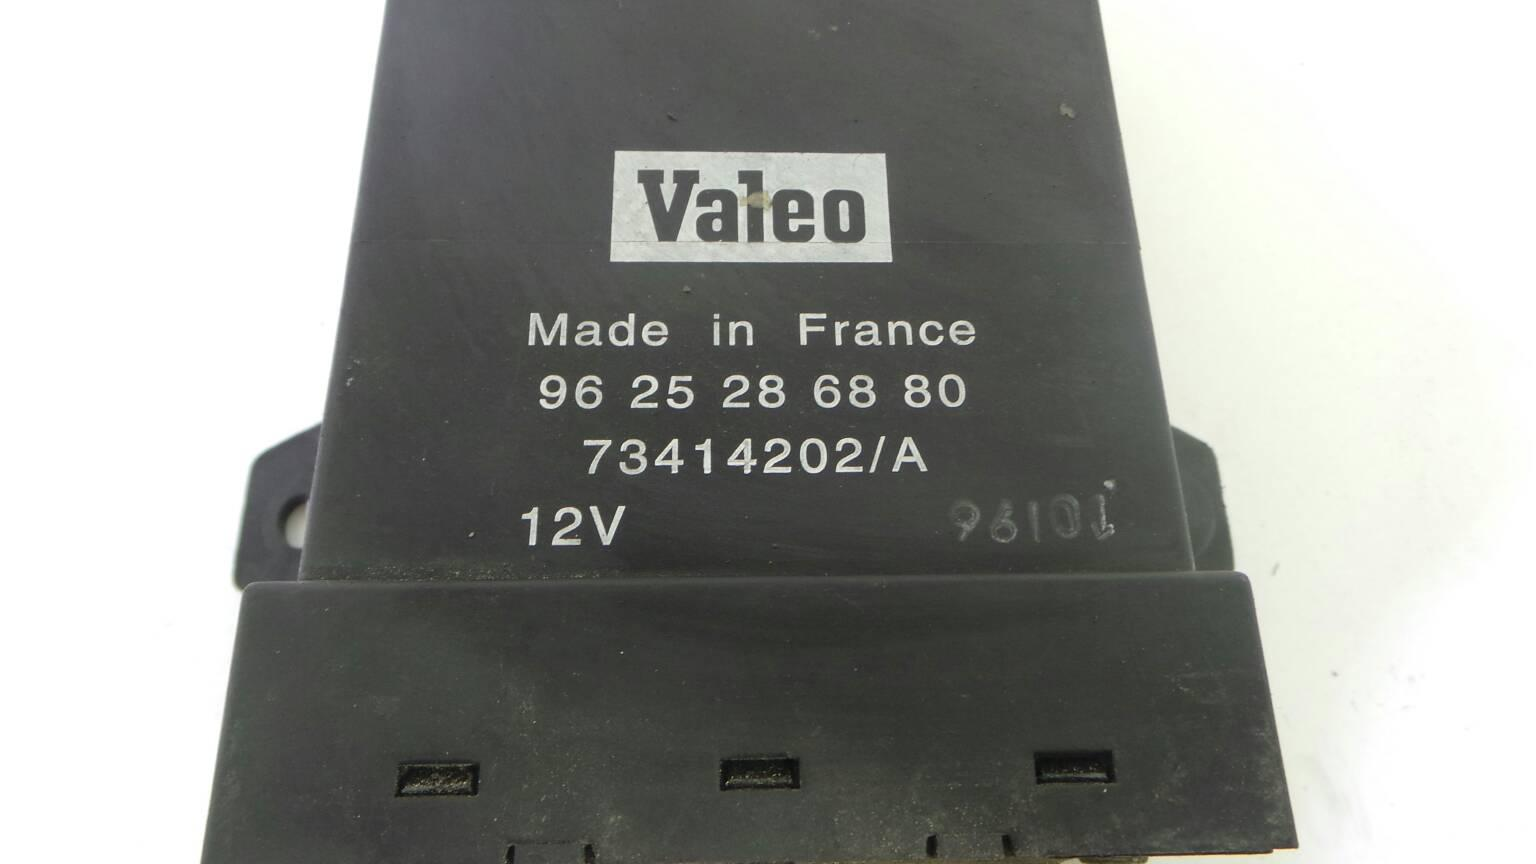 Peugeot 406 Fuse Box 2002 Model Blog About Wiring Diagrams In Cadillac Catera 8b 1 9 Td 1205723 Dodge Avenger